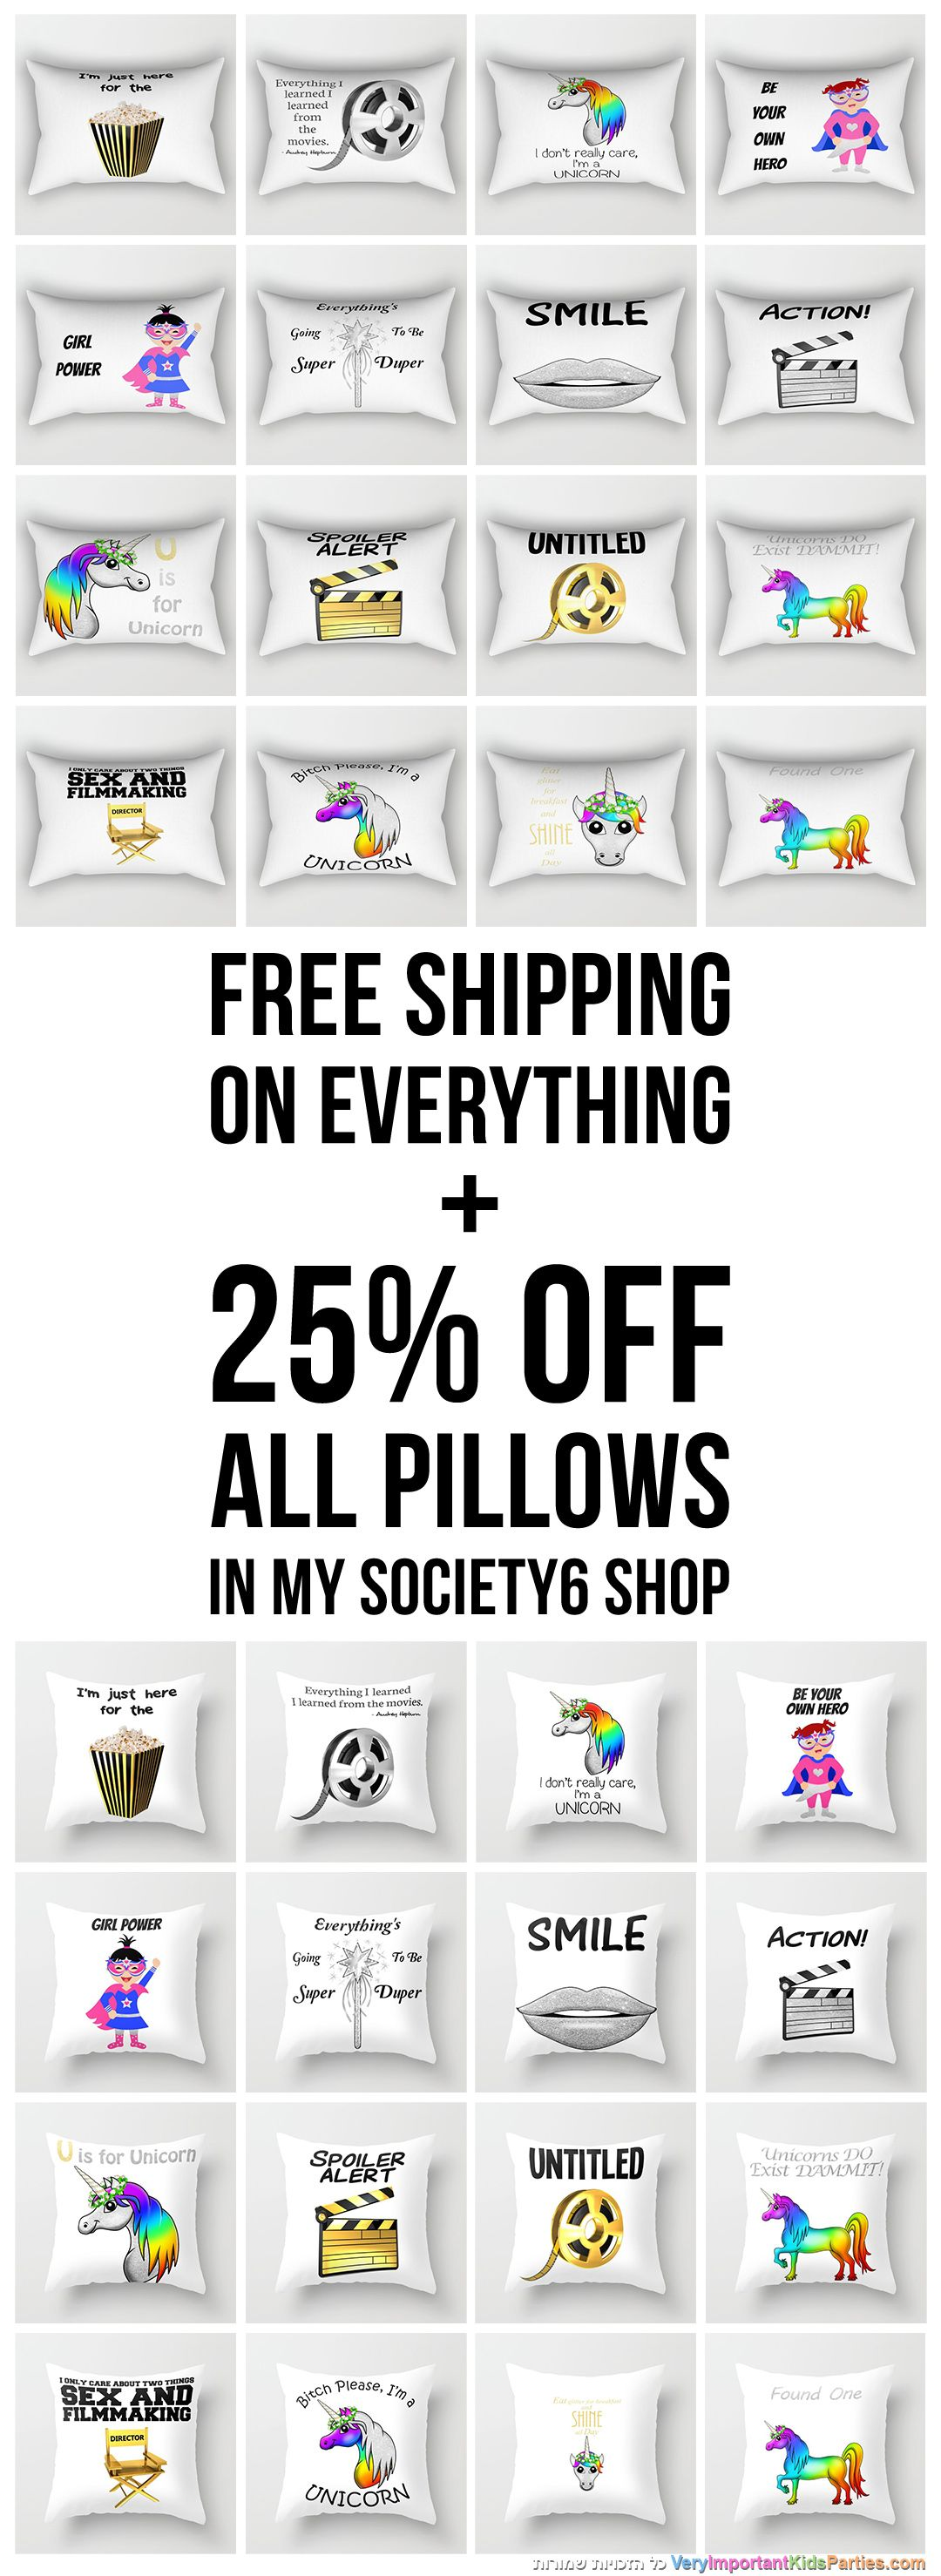 Free Shipping on everything + 25% off ALL PILLOWS! now the only need is to choose...